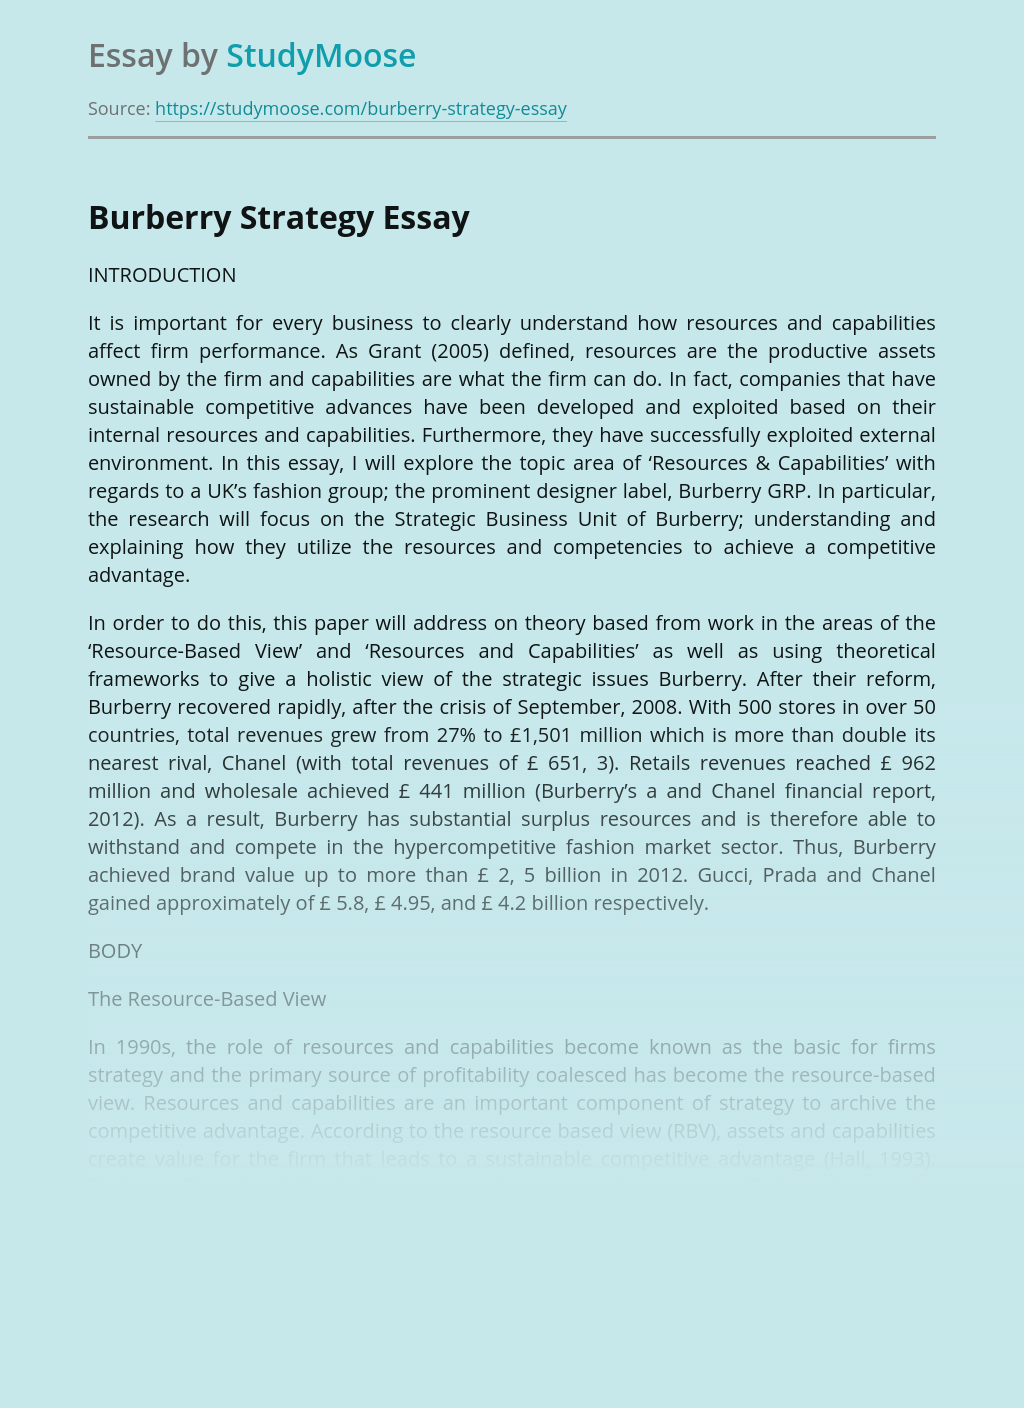 Burberry company Strategy